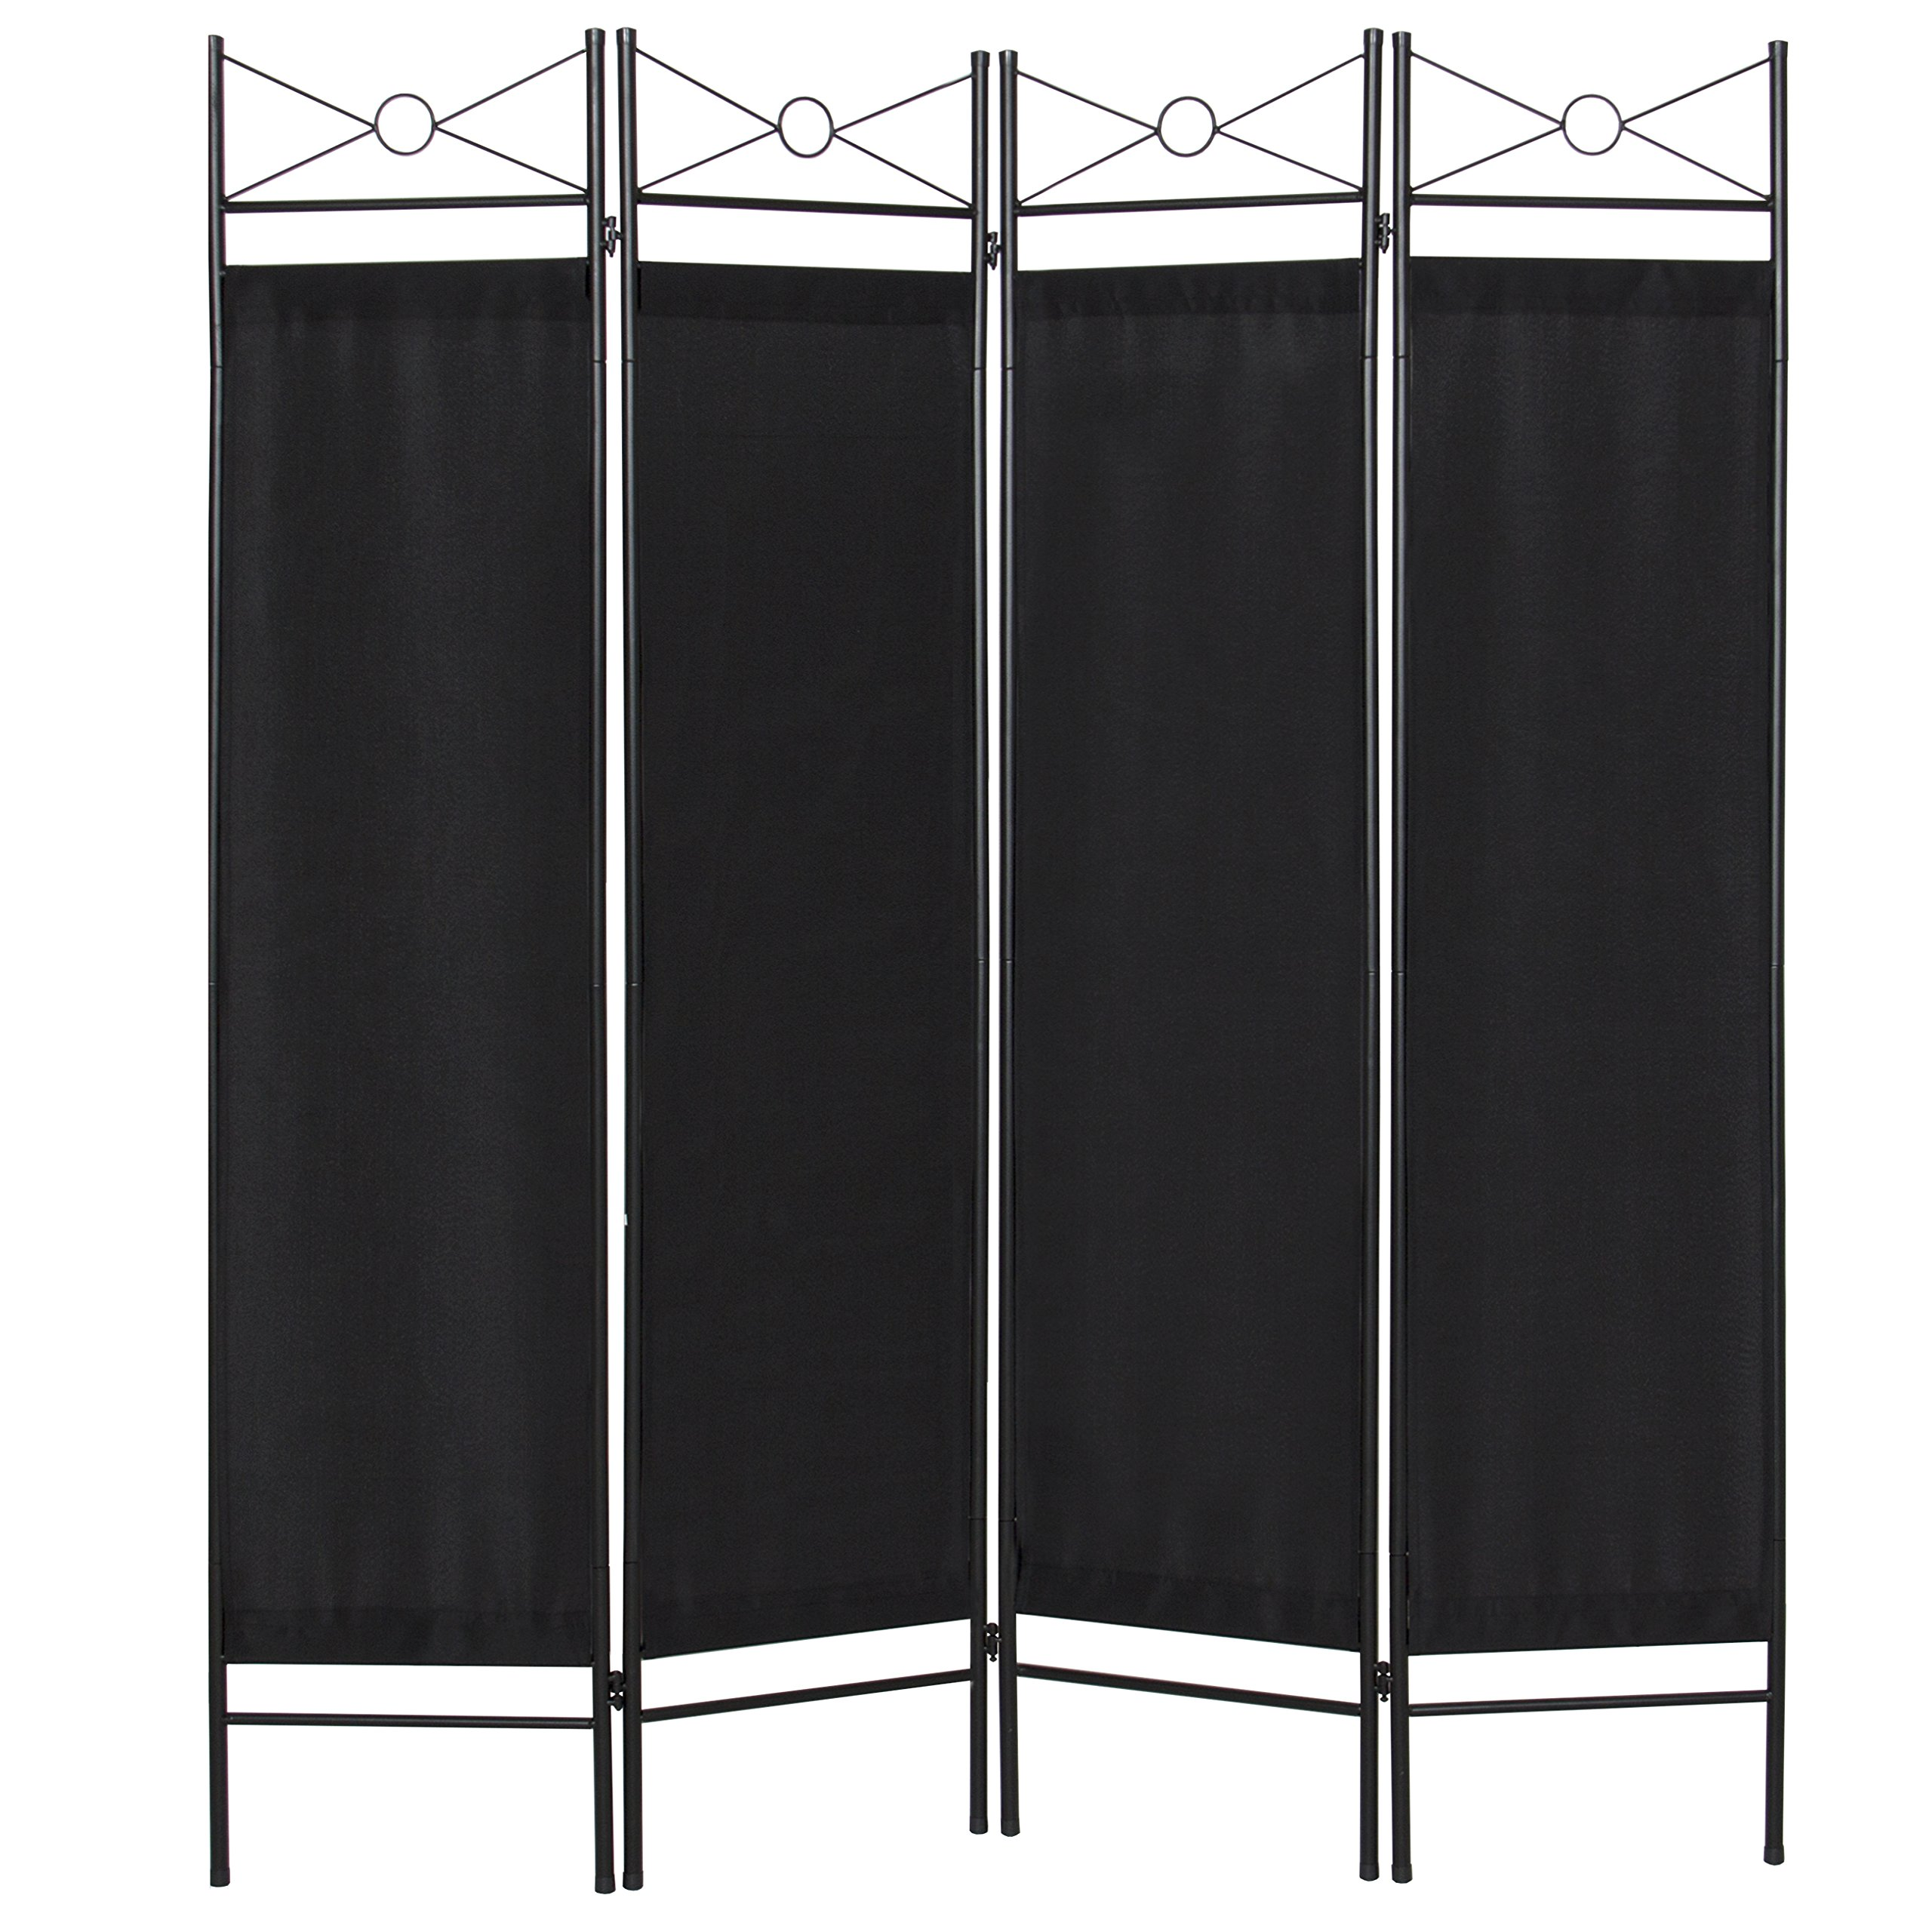 Best Choice Products 4-Panel Elegant Folding Home Accents Privacy Room Divider - Black by Best Choice Products